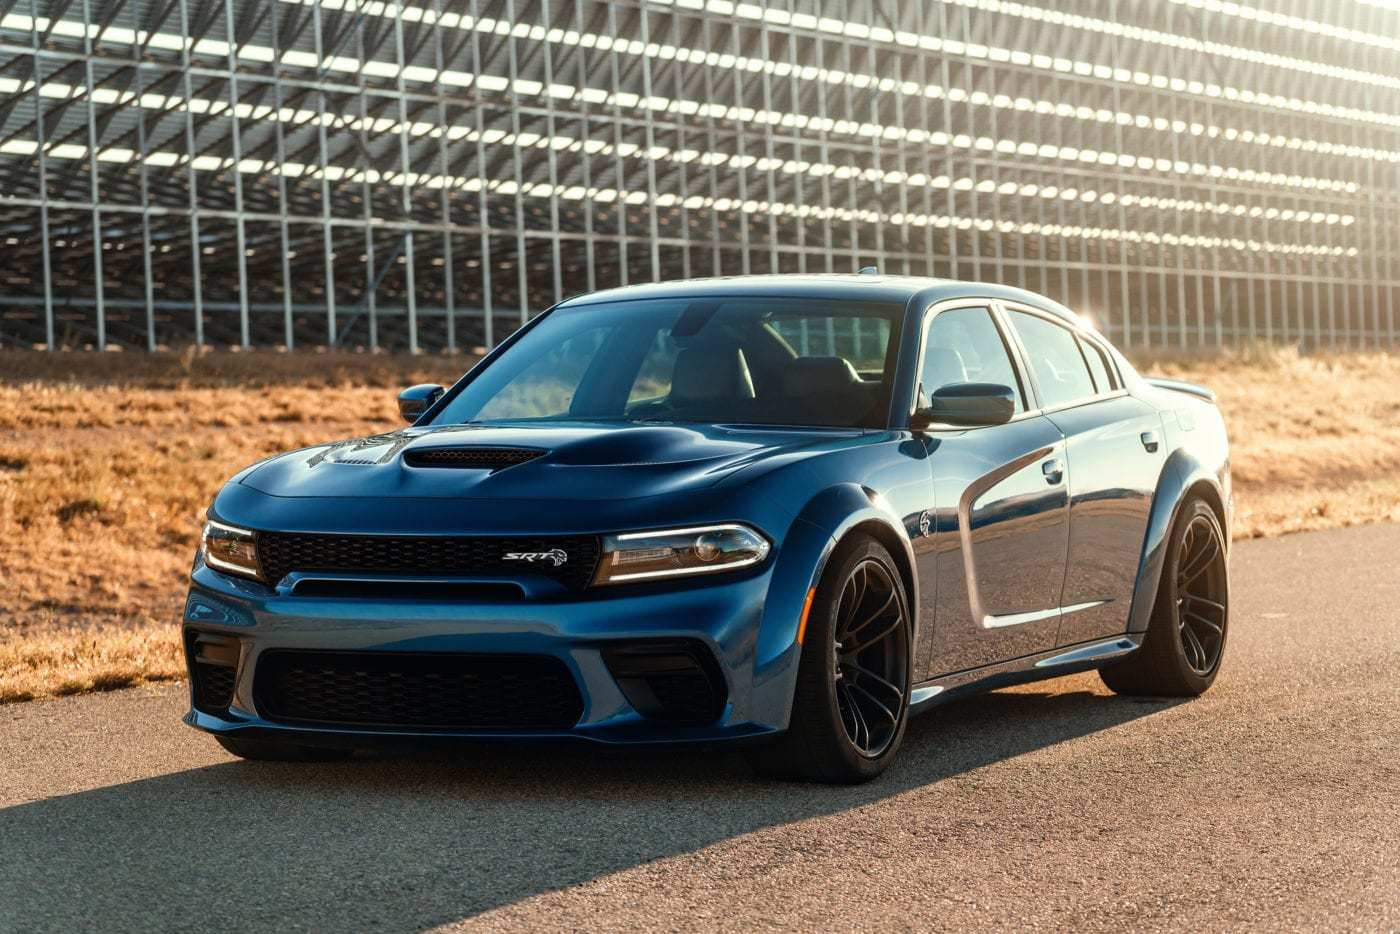 32 All New 2020 Dodge Charger Srt Specs And Review